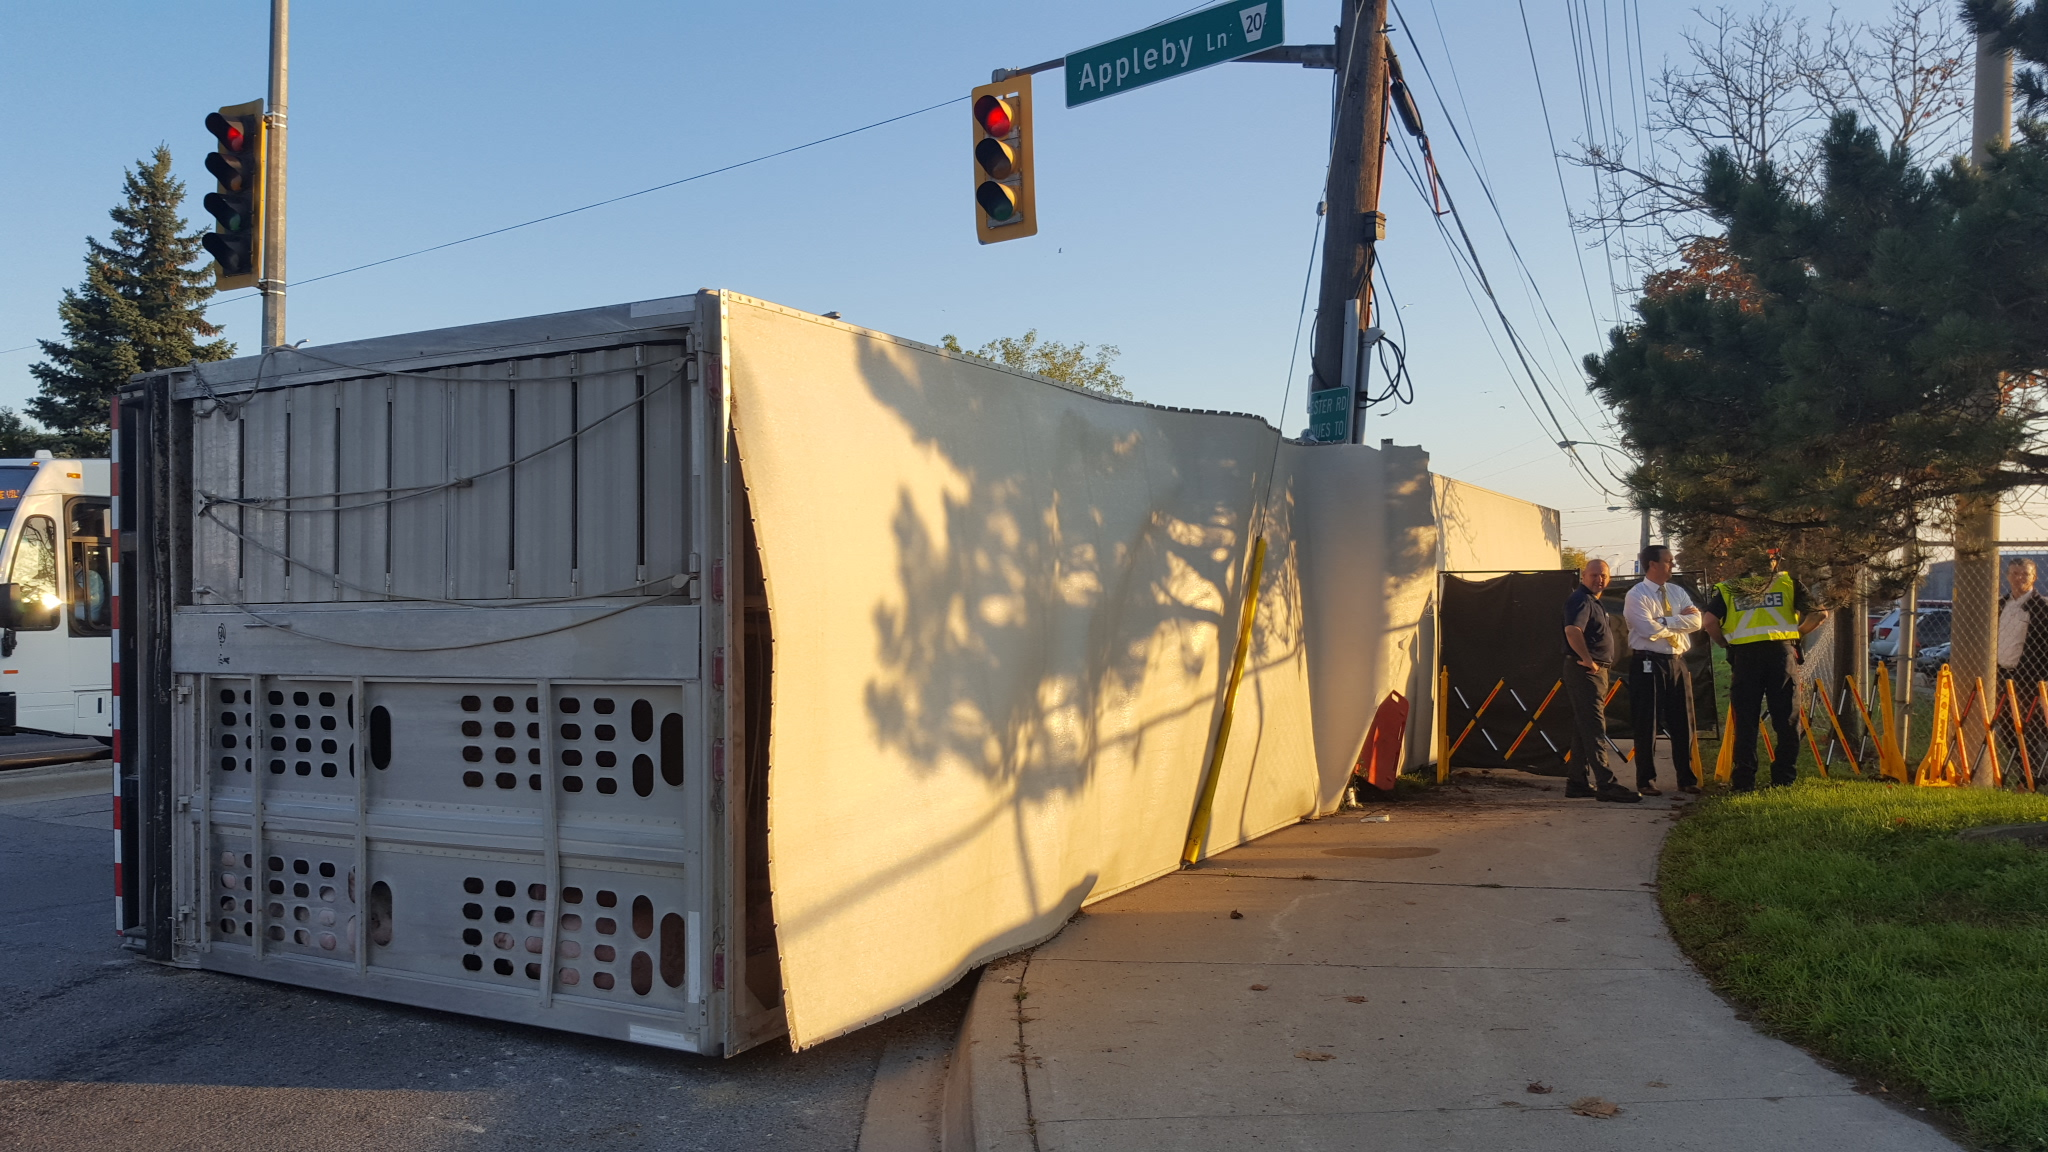 A pig runs away after a truck overturned at a slaughterhouse entrance on Oct. 5, 2016. Image credit: David Ritchie